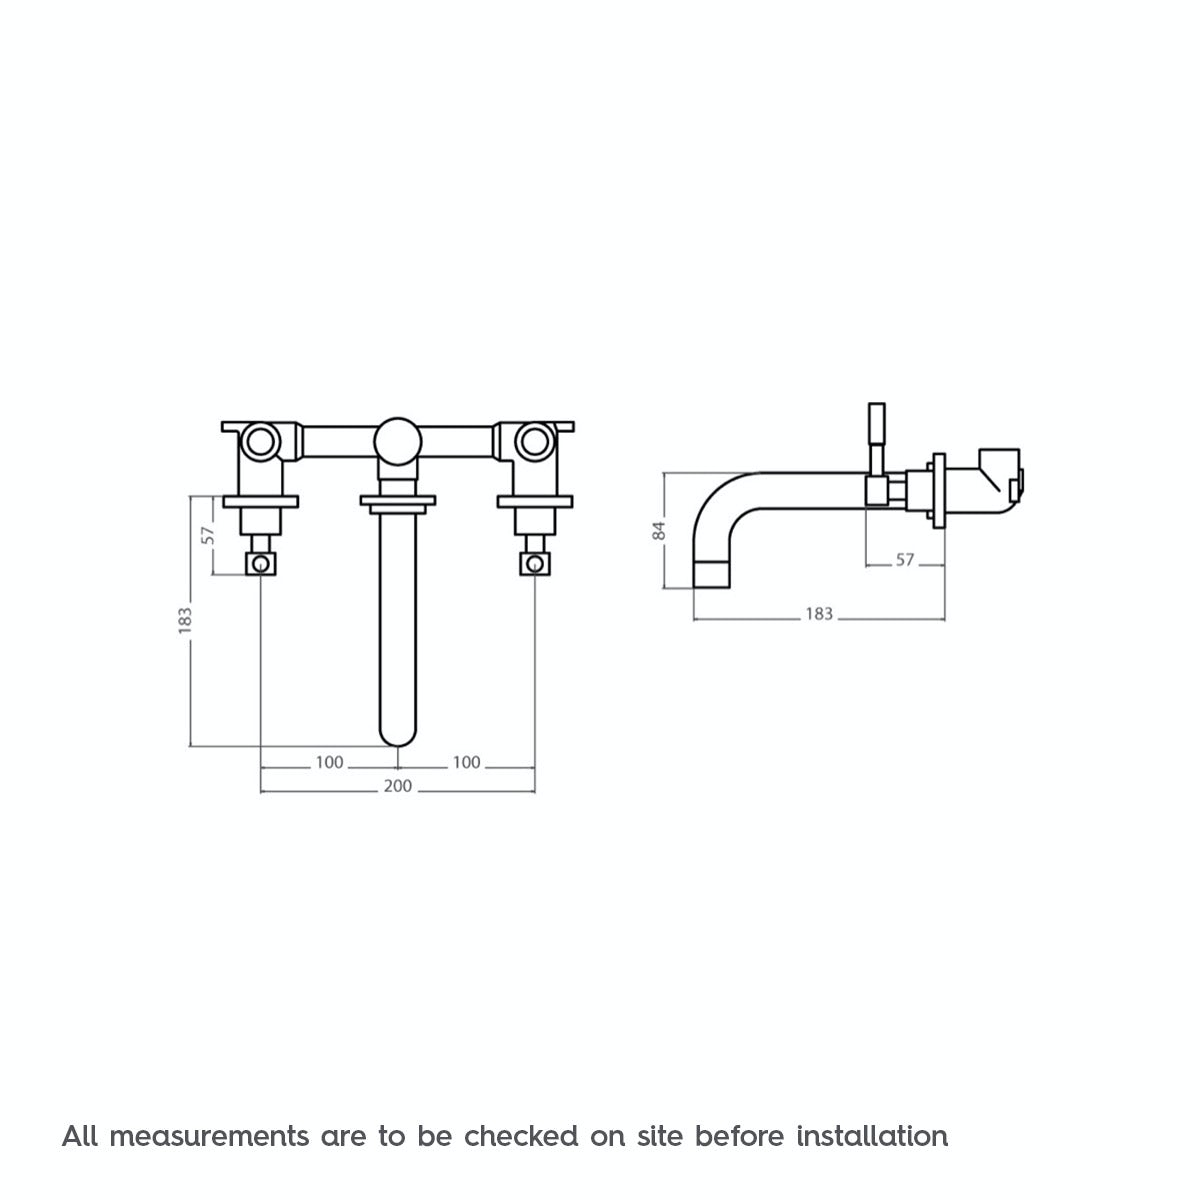 Dimensions for Mode Harrison wall mounted basin mixer tap